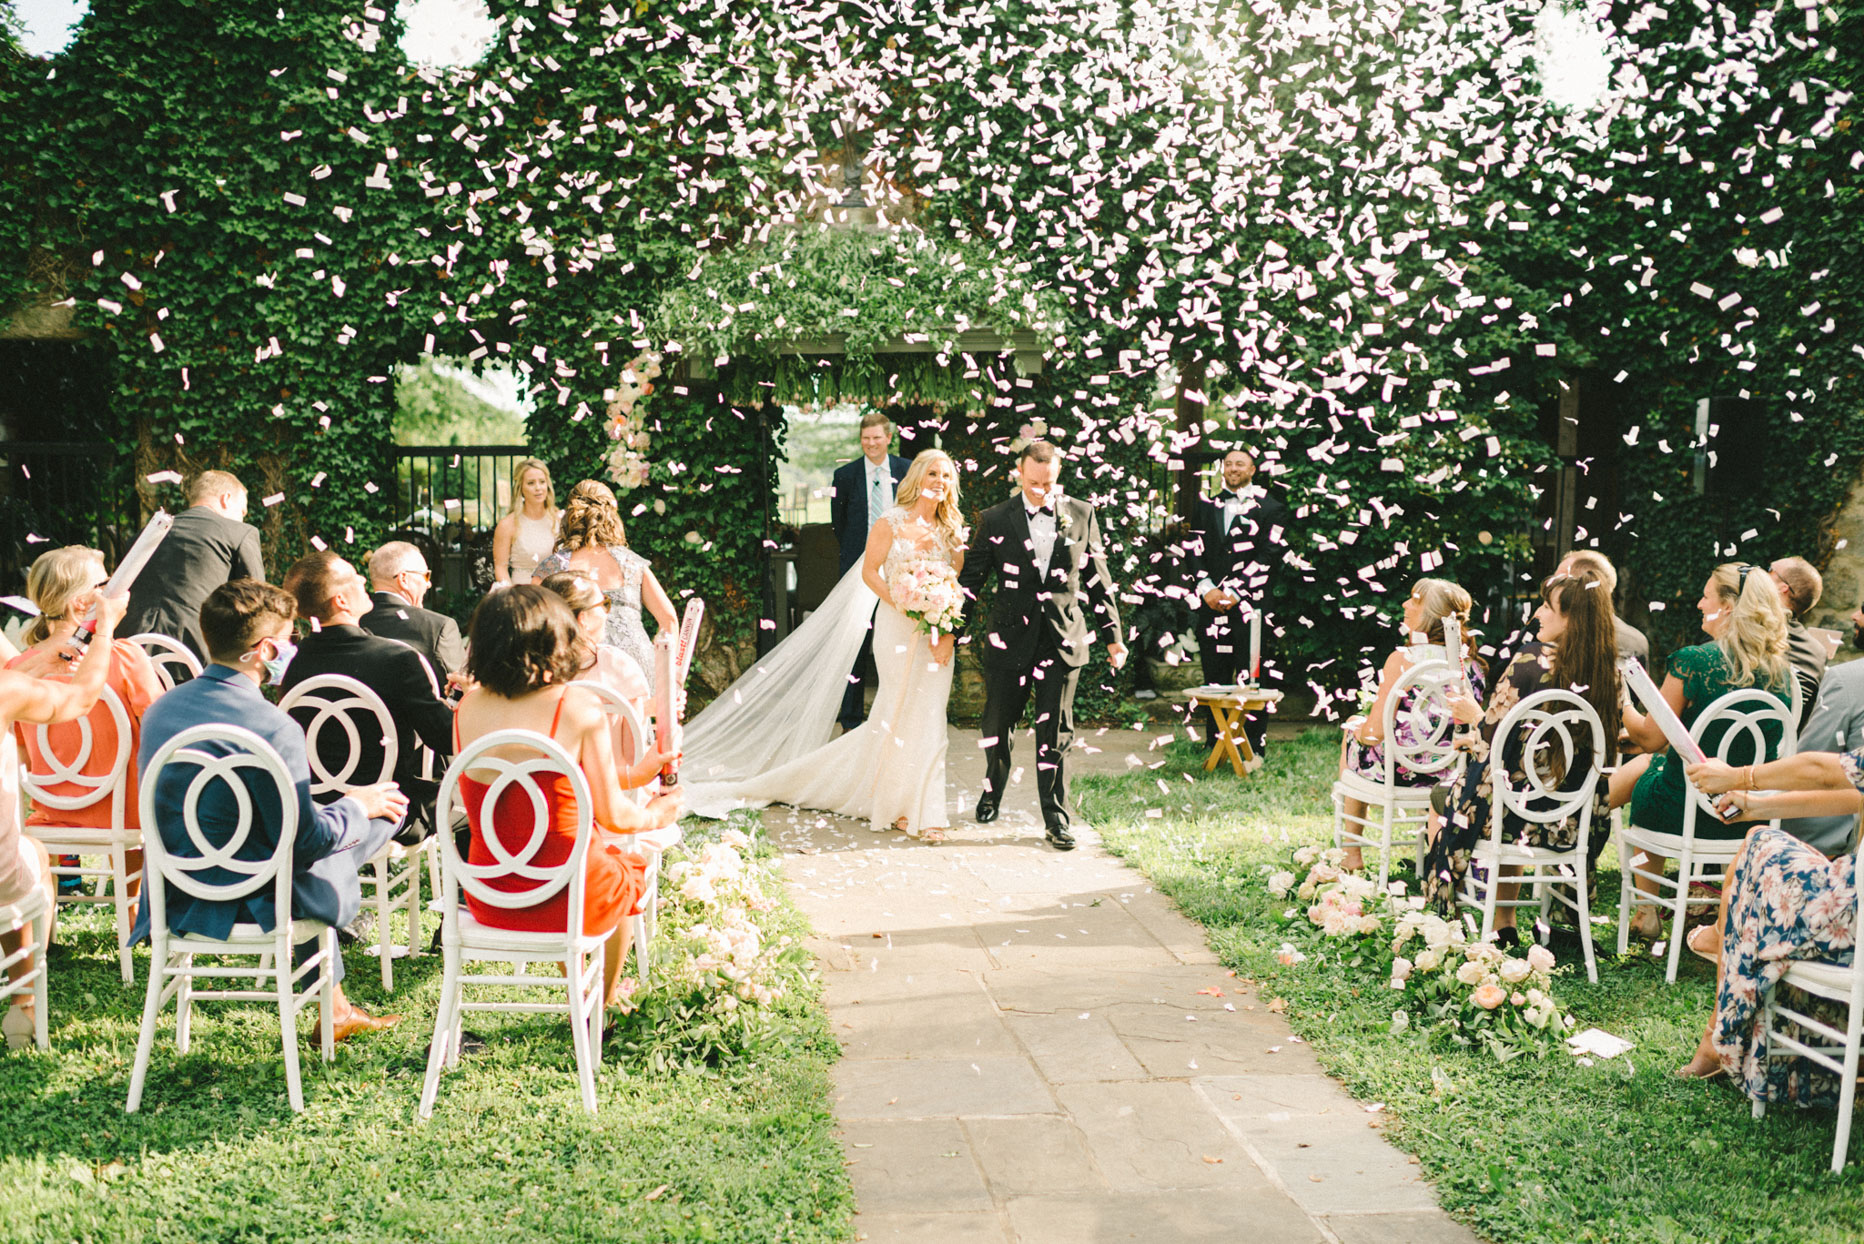 bride and groom exiting wedding ceremony in shower of confetti